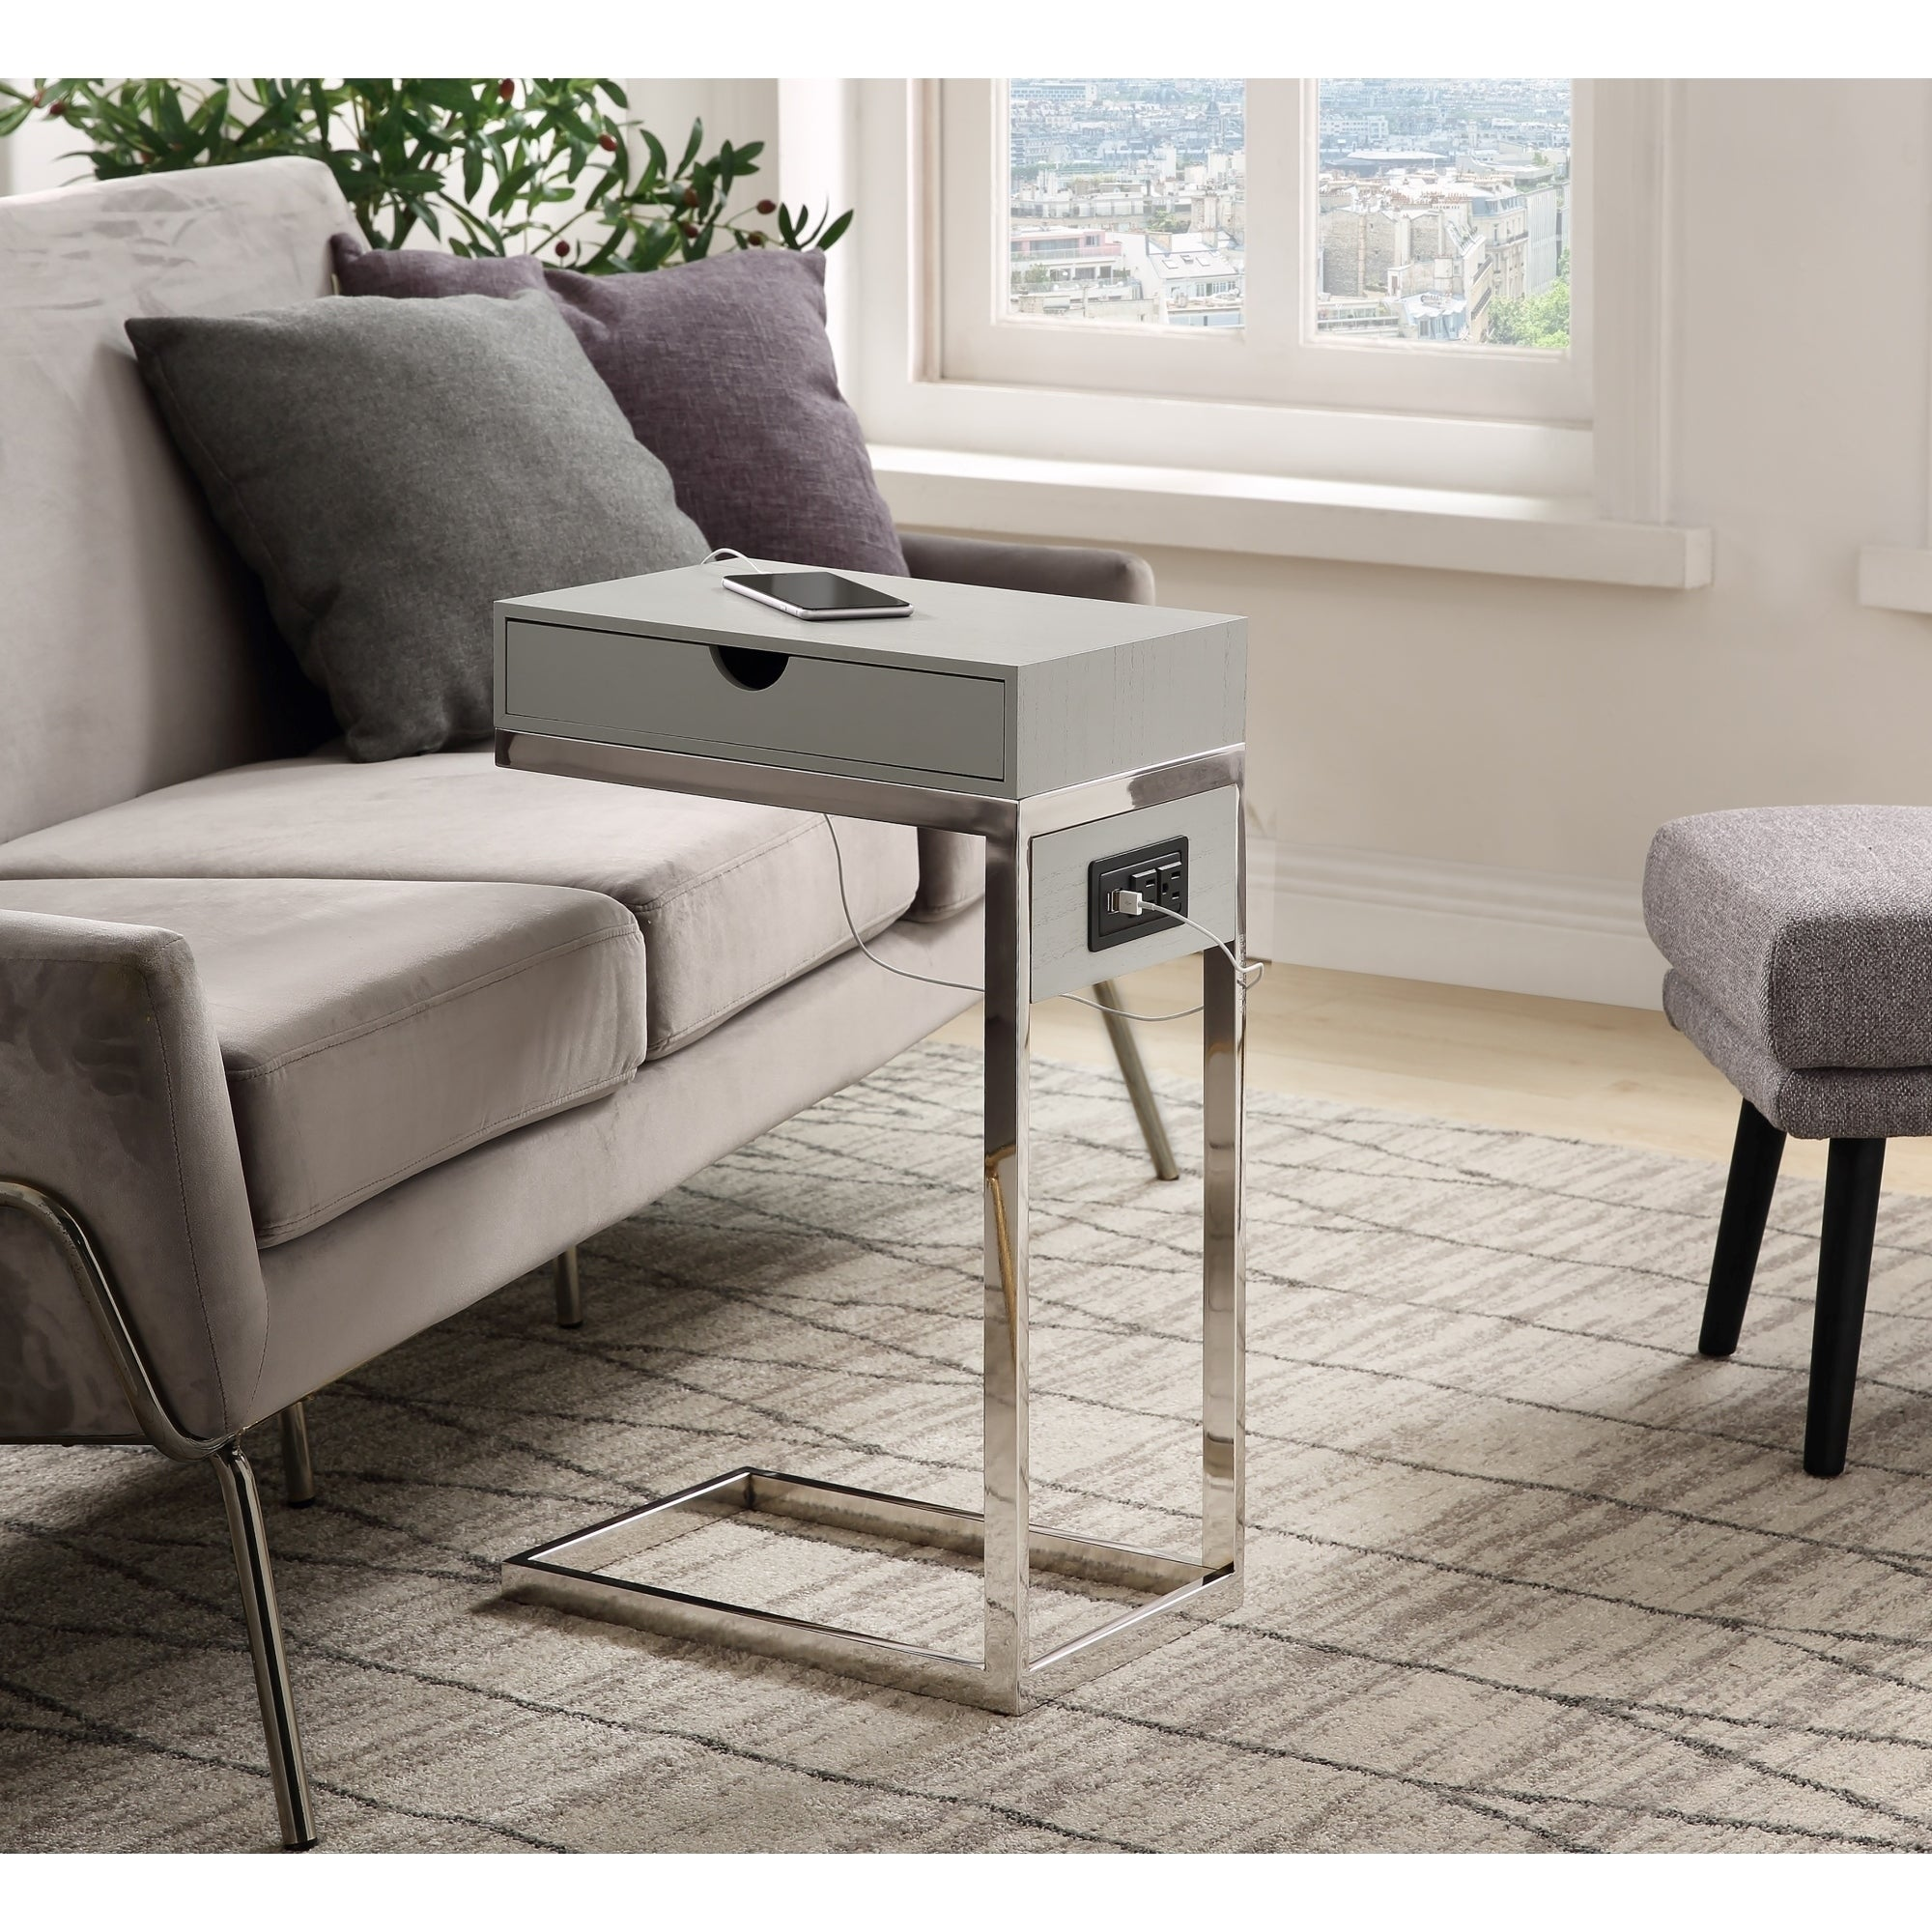 Carbon Loft Cedes C Table With Usb Ports Outlets And Storage Drawer